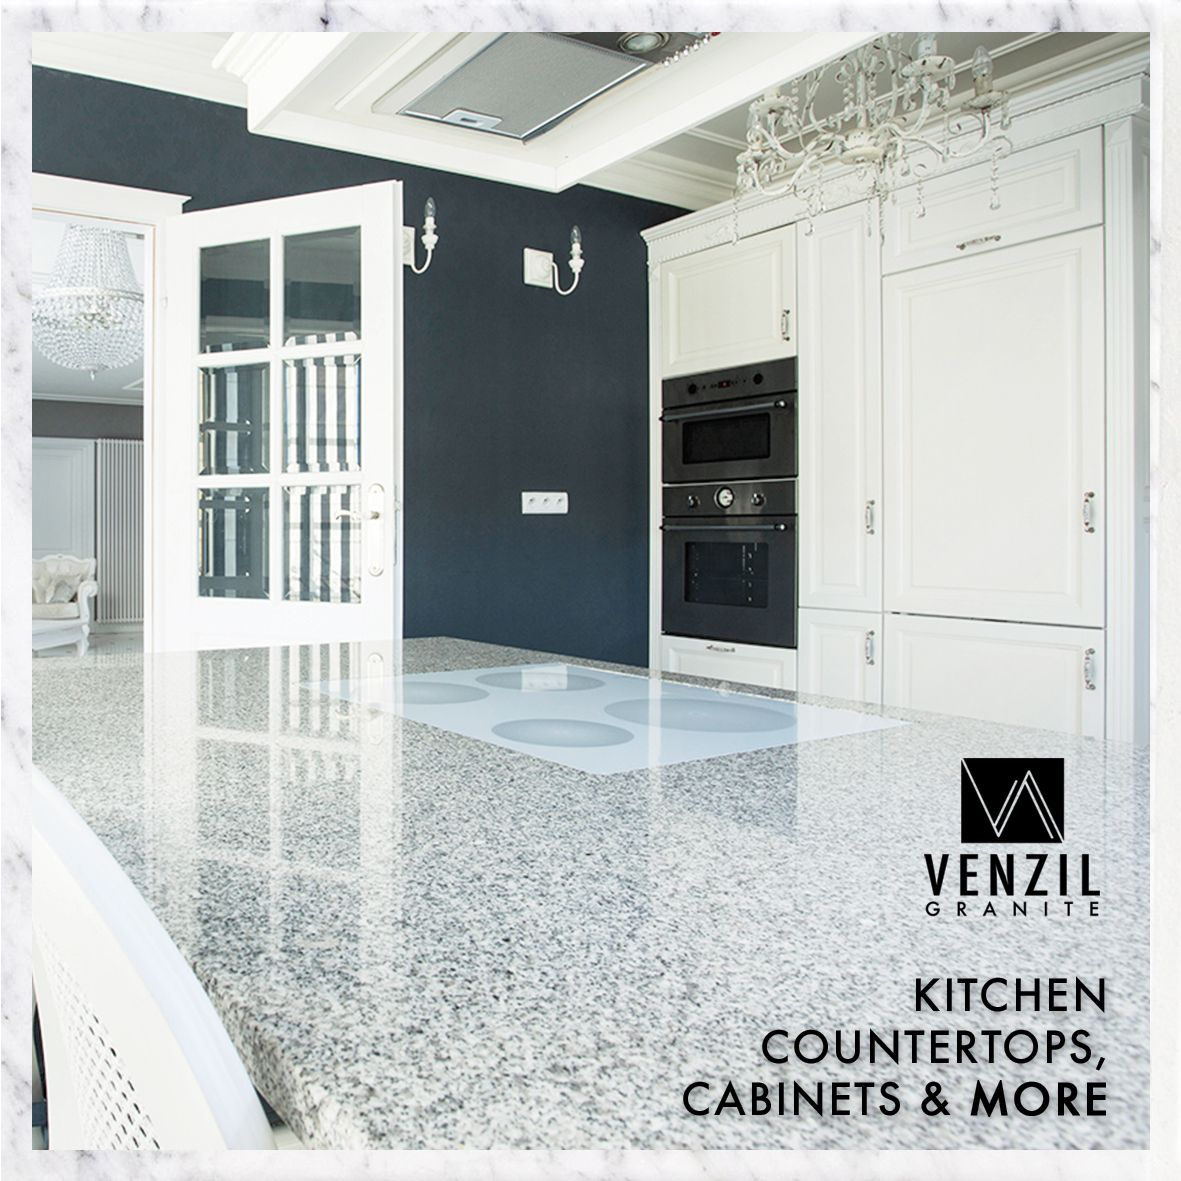 Fabrication And Installation Of Kitchen Cabinets Countertops And Anything Else You Need Contact Us Venzilgra With Images Countertops Home Renovation Quartz Countertops